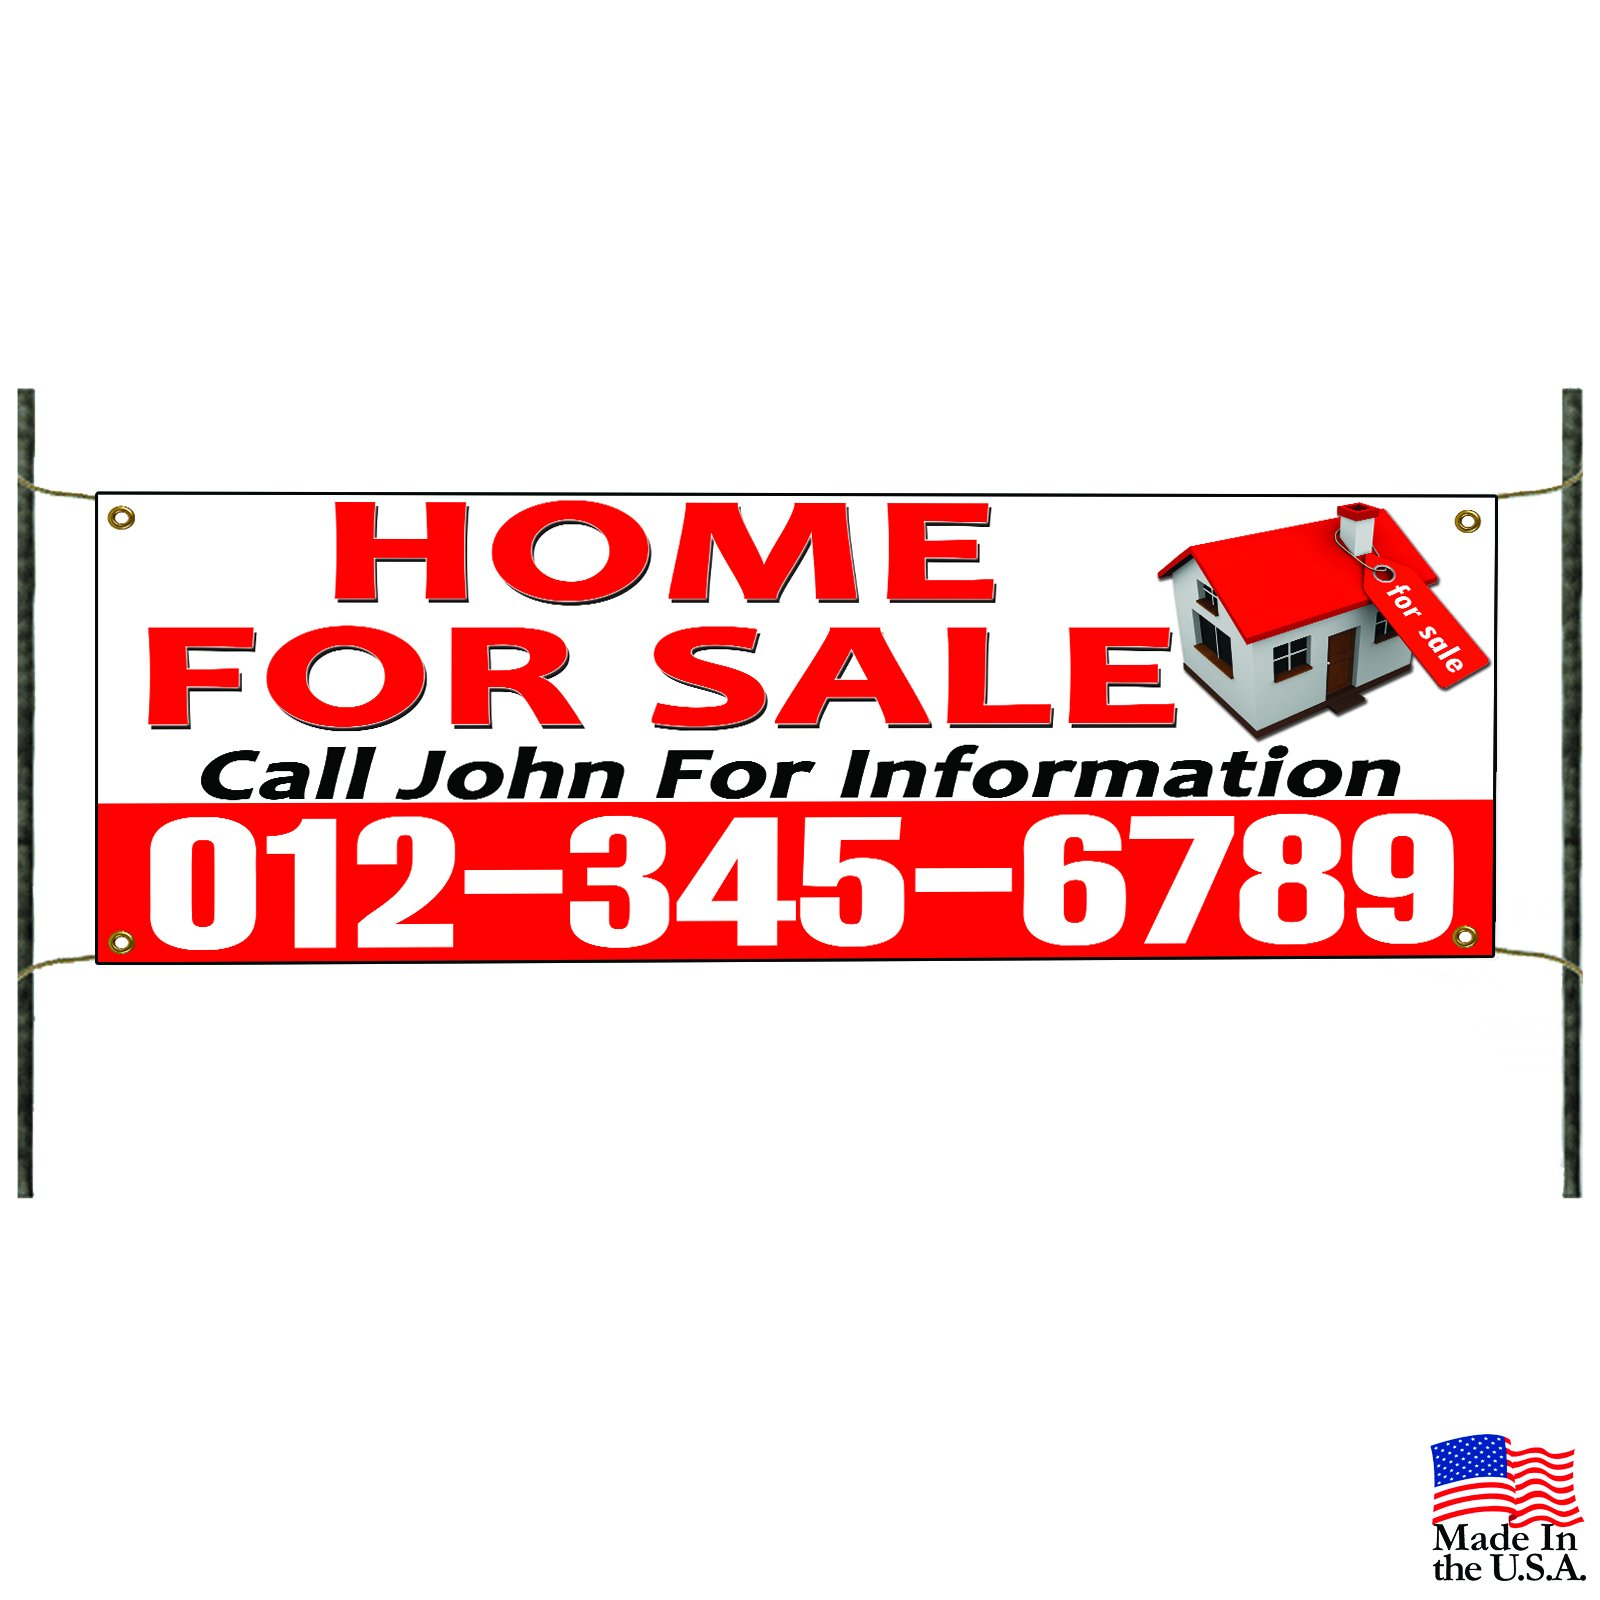 Home For Sale Call Name And Number Banner Sign Apartment Commercial Business Advertising